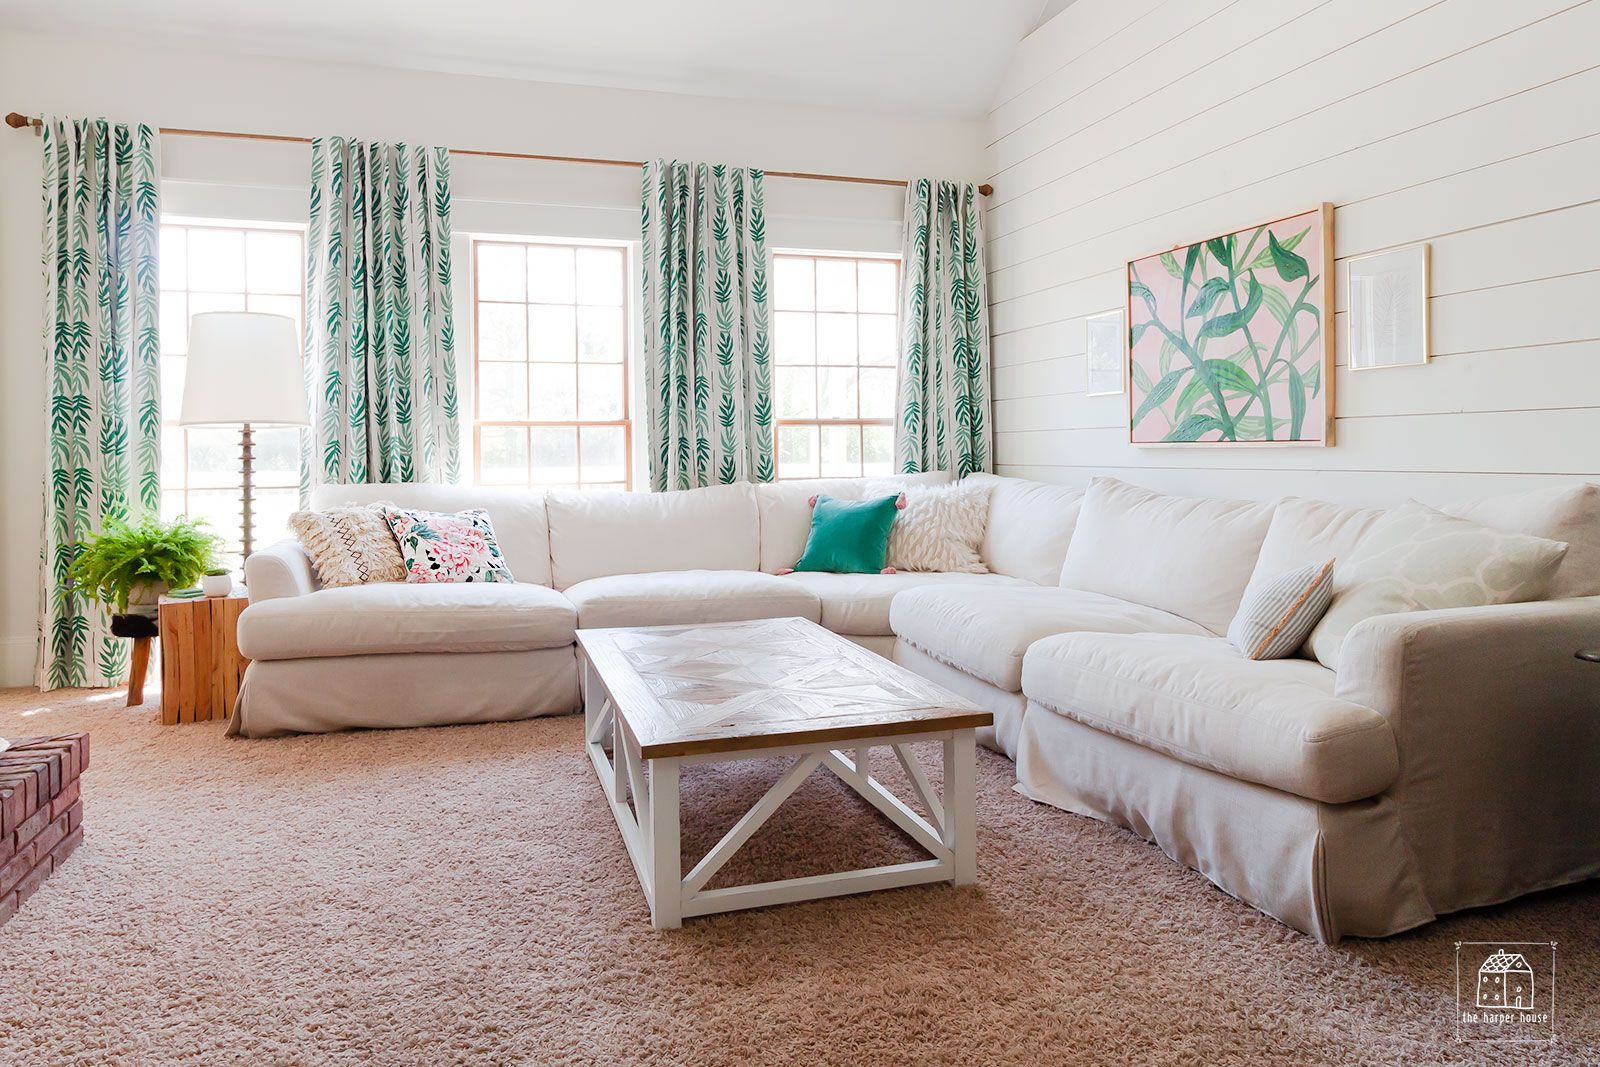 Our Living Room Refresh with Drew Barrymore's Flower Home